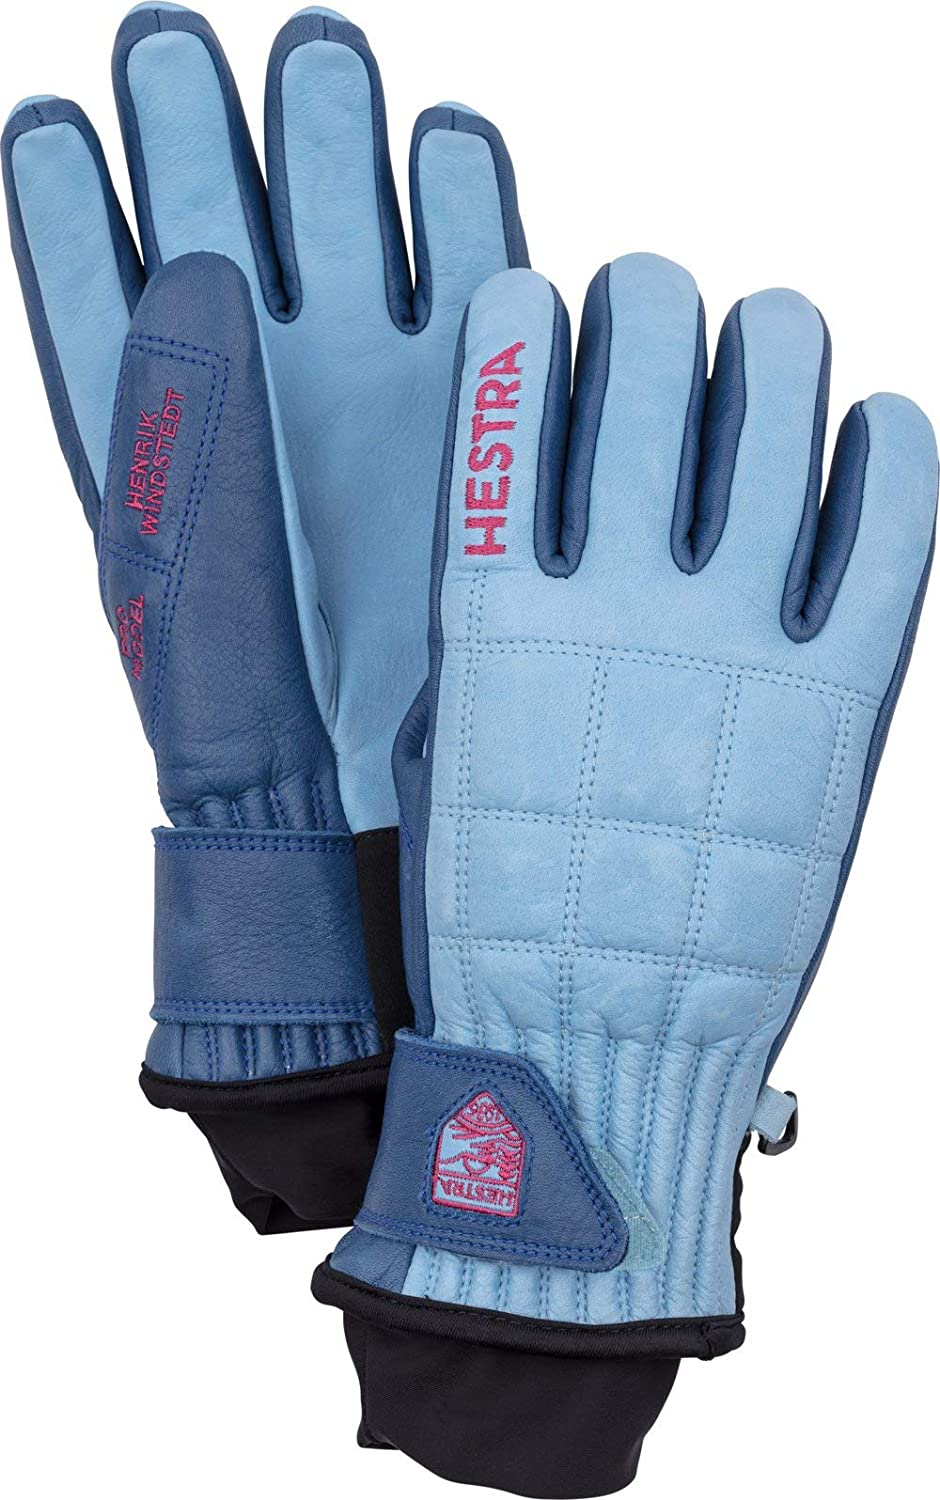 5 Finger Gloves /& Cap Hestra Unisex Henrik Leather Pro Model Winter Bundle